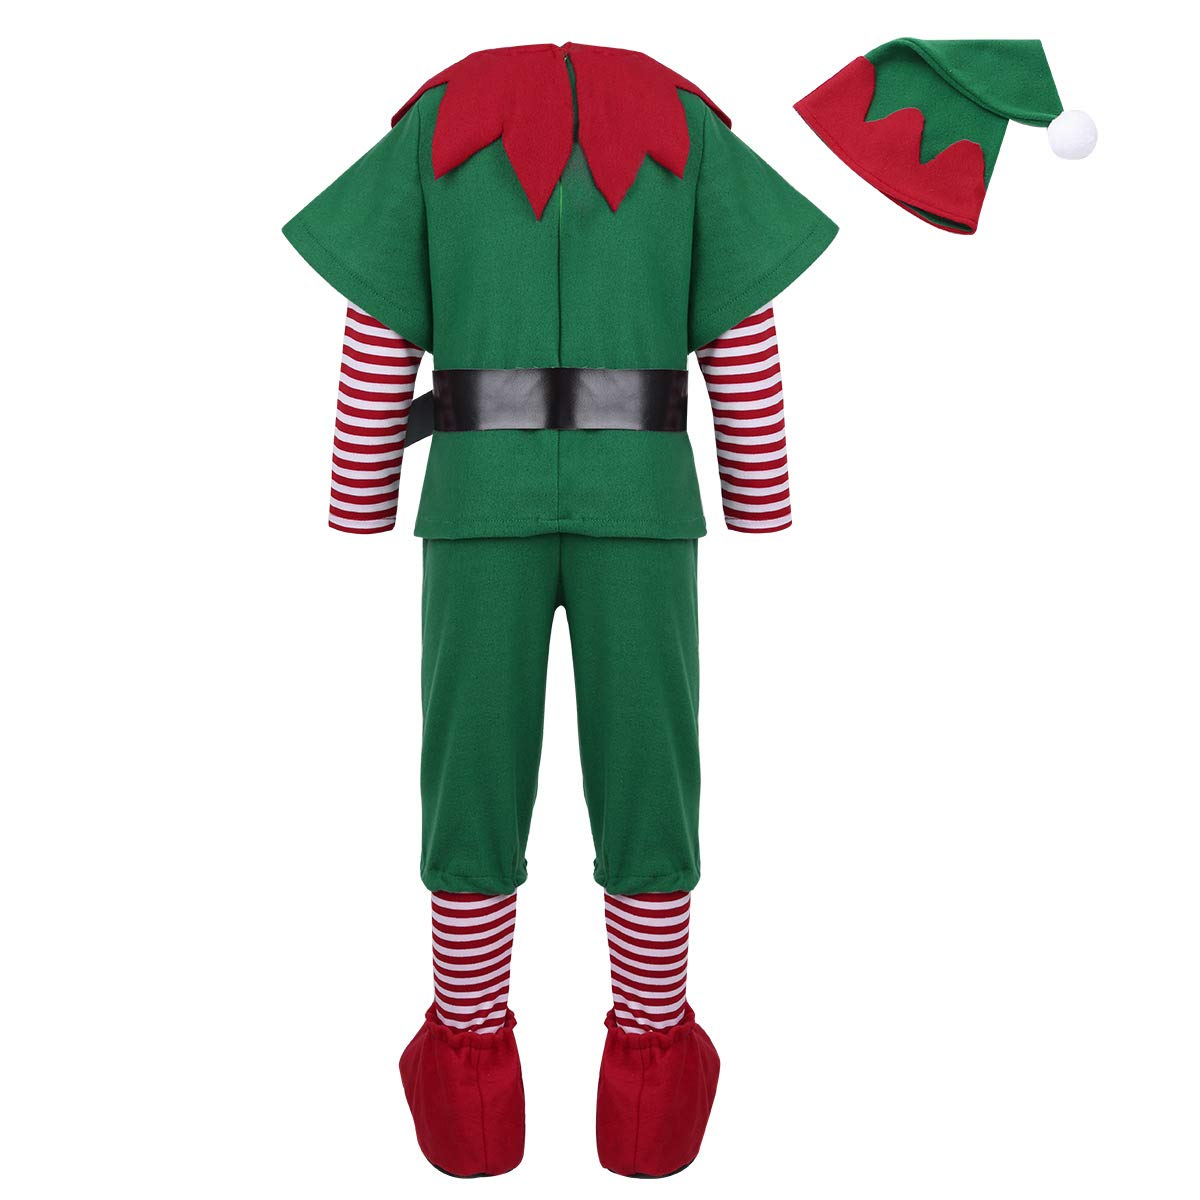 d1302ffba6475f Amazon.com: dPois Kids Boys Girls' Santa's Elf Outfits Shirt Pants/Dress  with Hat Belt Tights Set Christmas Fancy Dress Up: Clothing